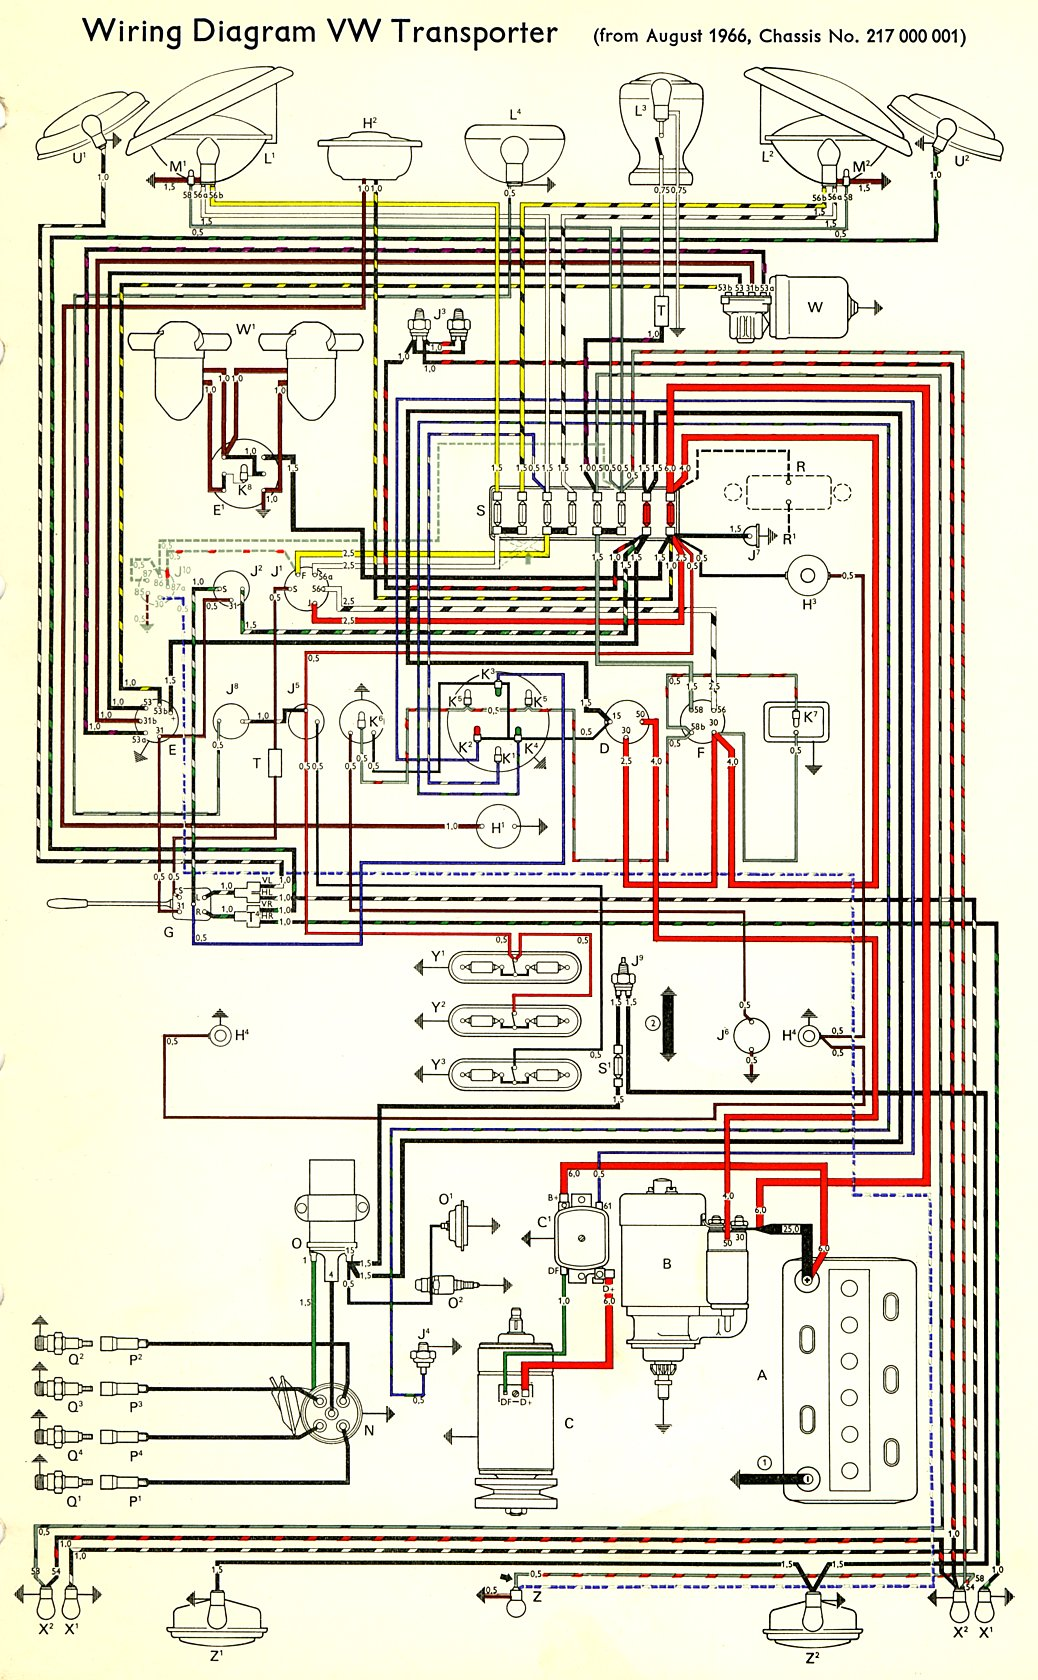 bus_67 1967 bus wiring diagram thegoldenbug com 1957 vw bug wiring diagram at soozxer.org